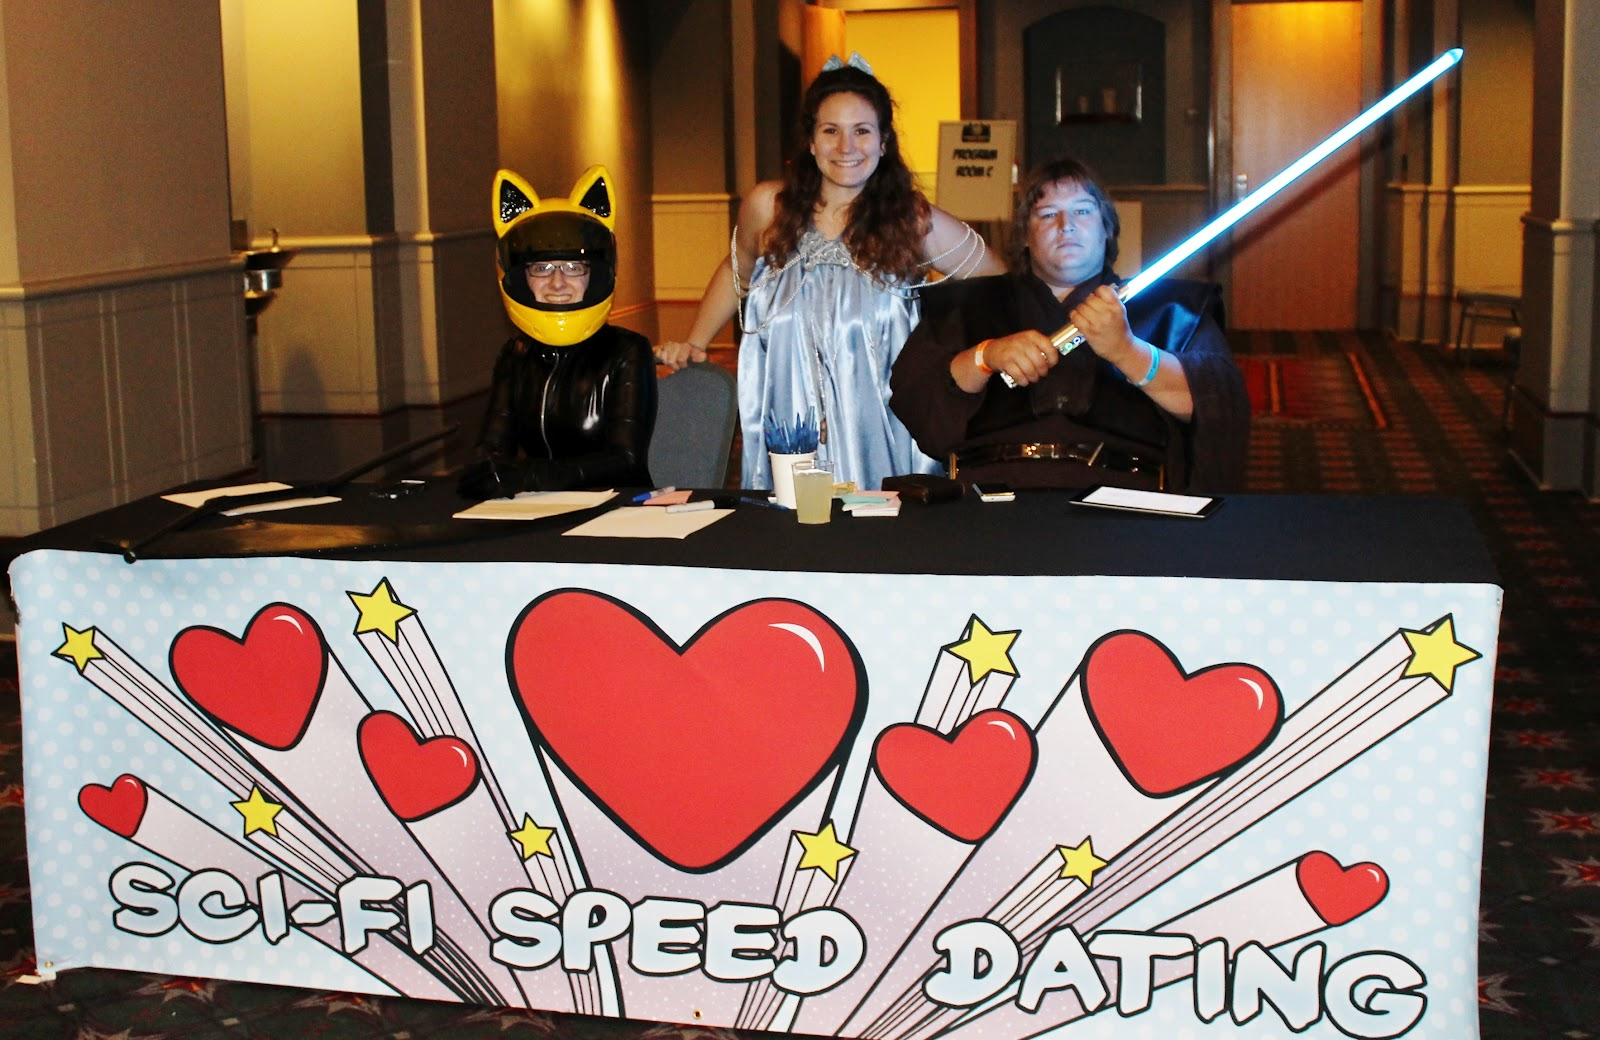 Sci-fi speed dating weren't given a reason